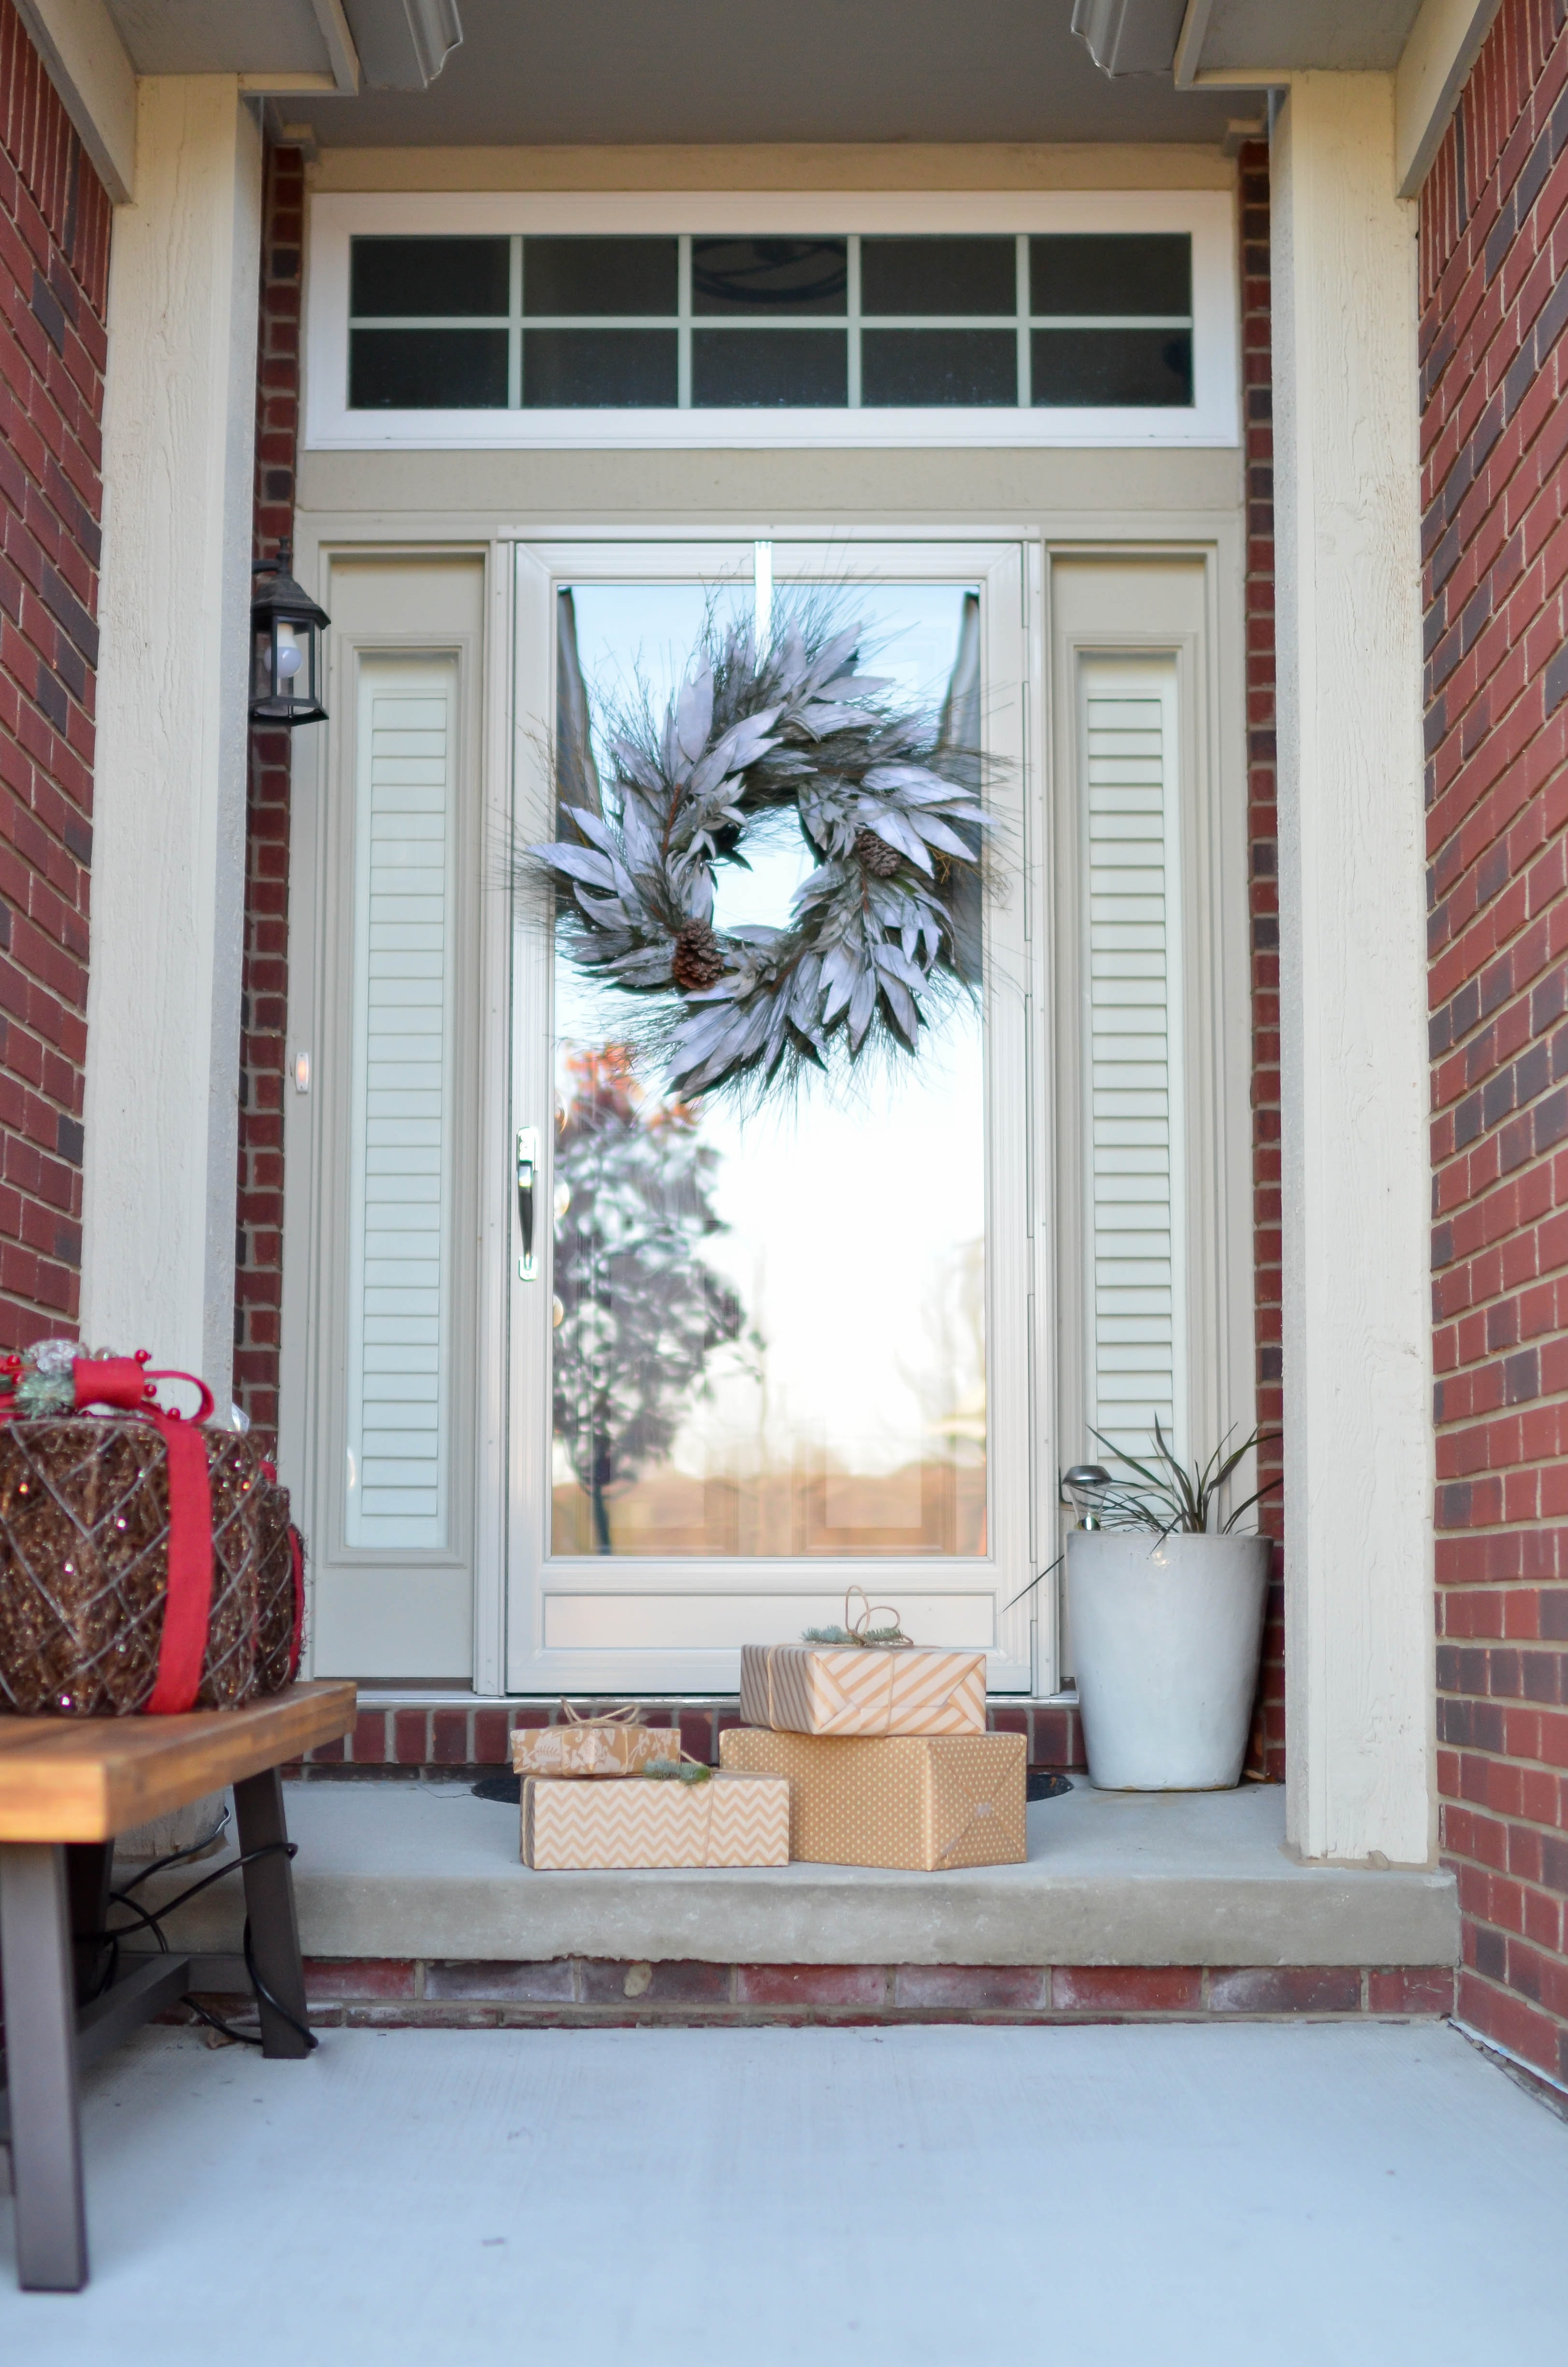 wreath hanging on full-lite door of house